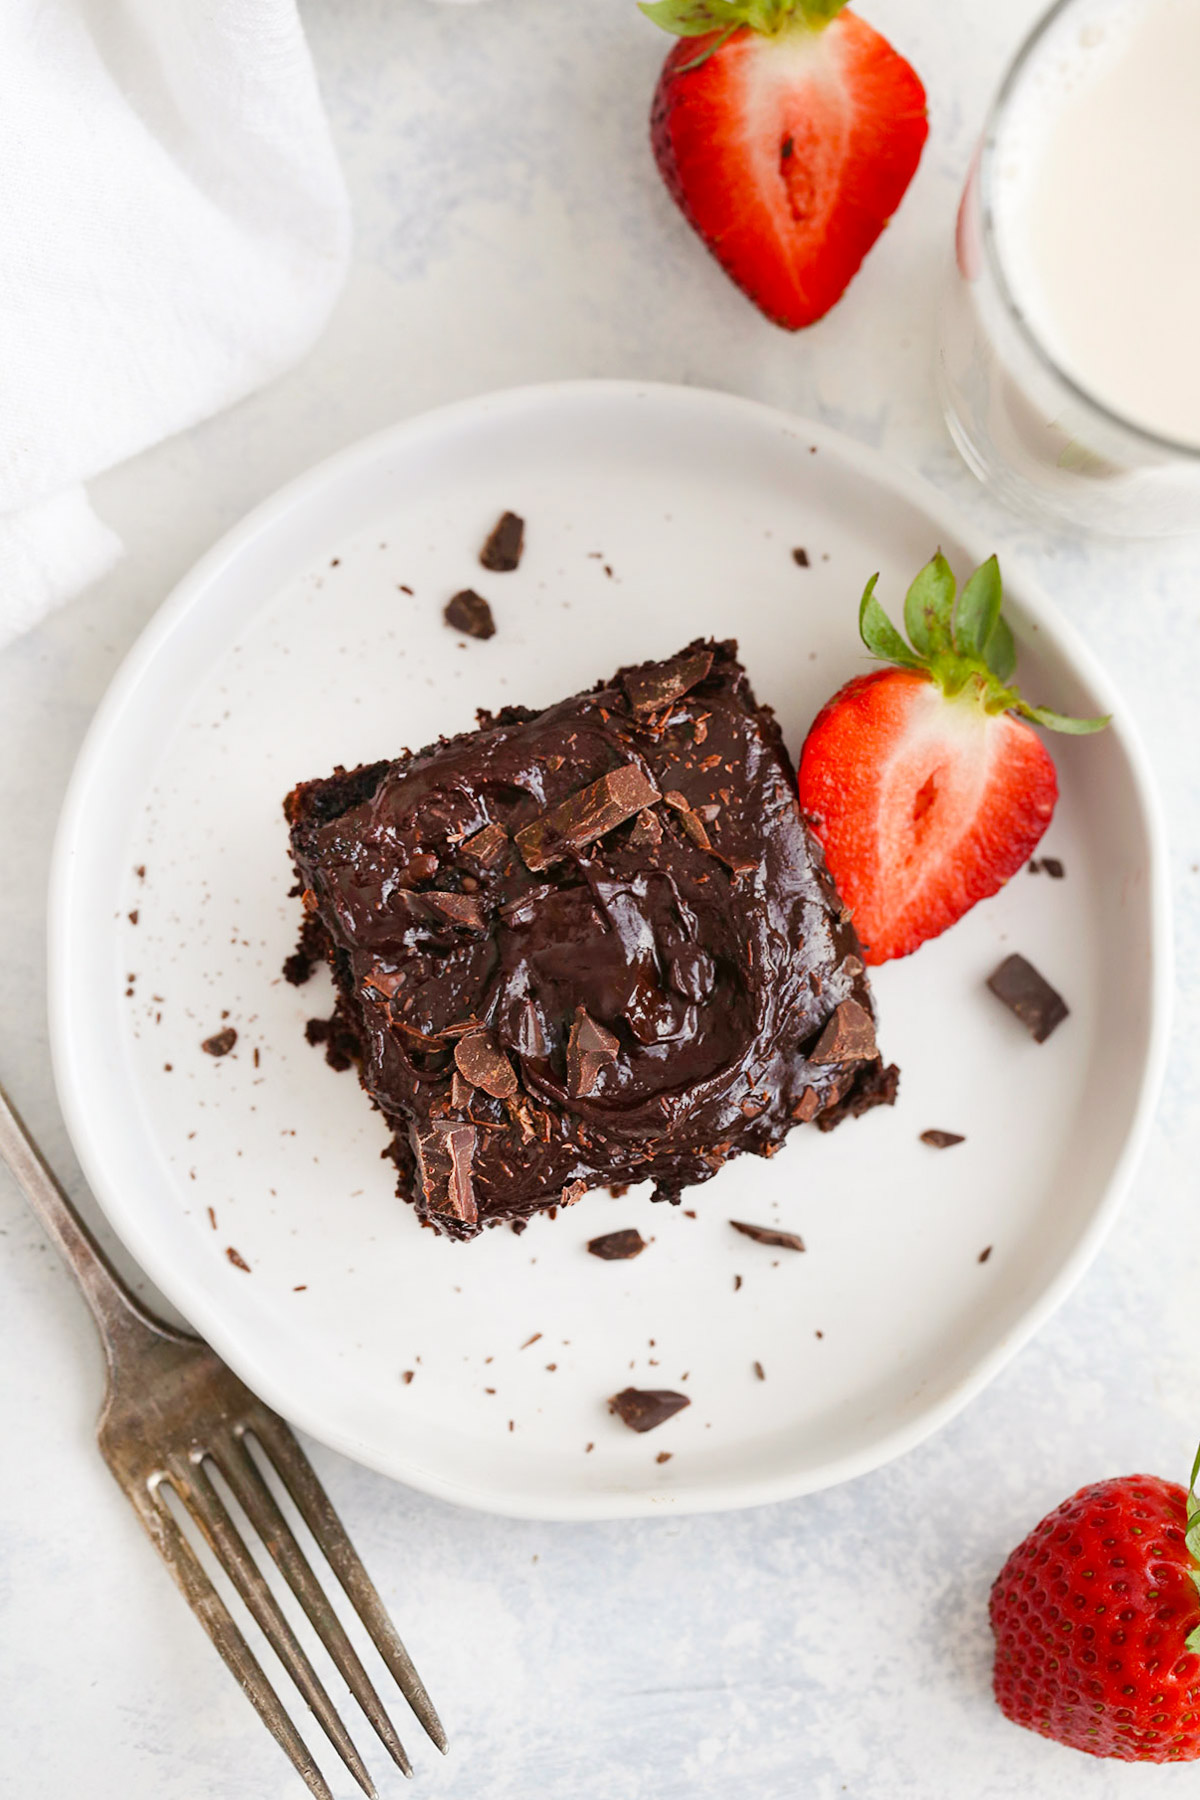 Overhead view of a slice of Gluten Free Chocolate Zucchini Cake with Healthy Chocolate Frosting